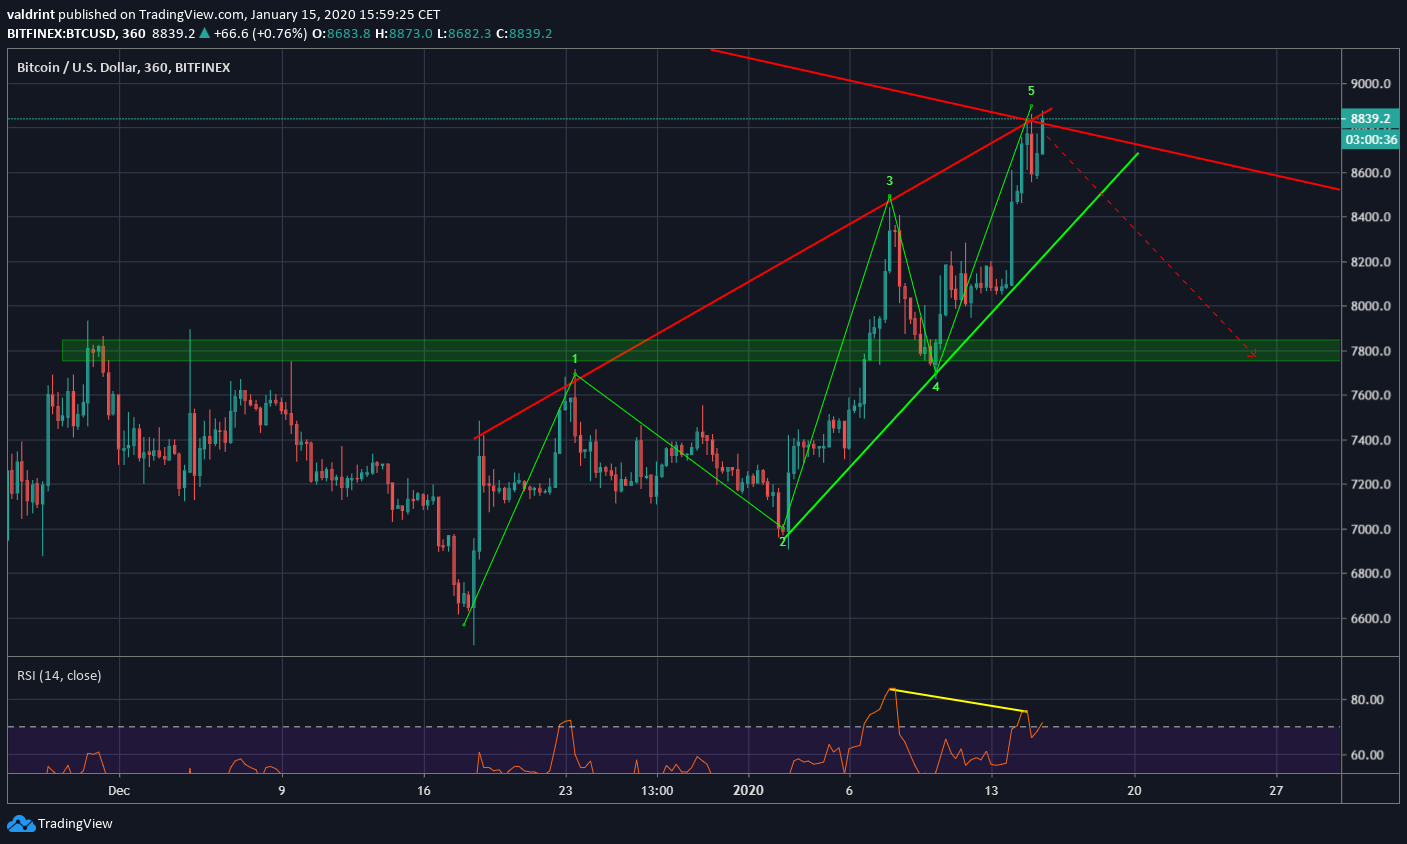 Bitcoin Ascending Wedge